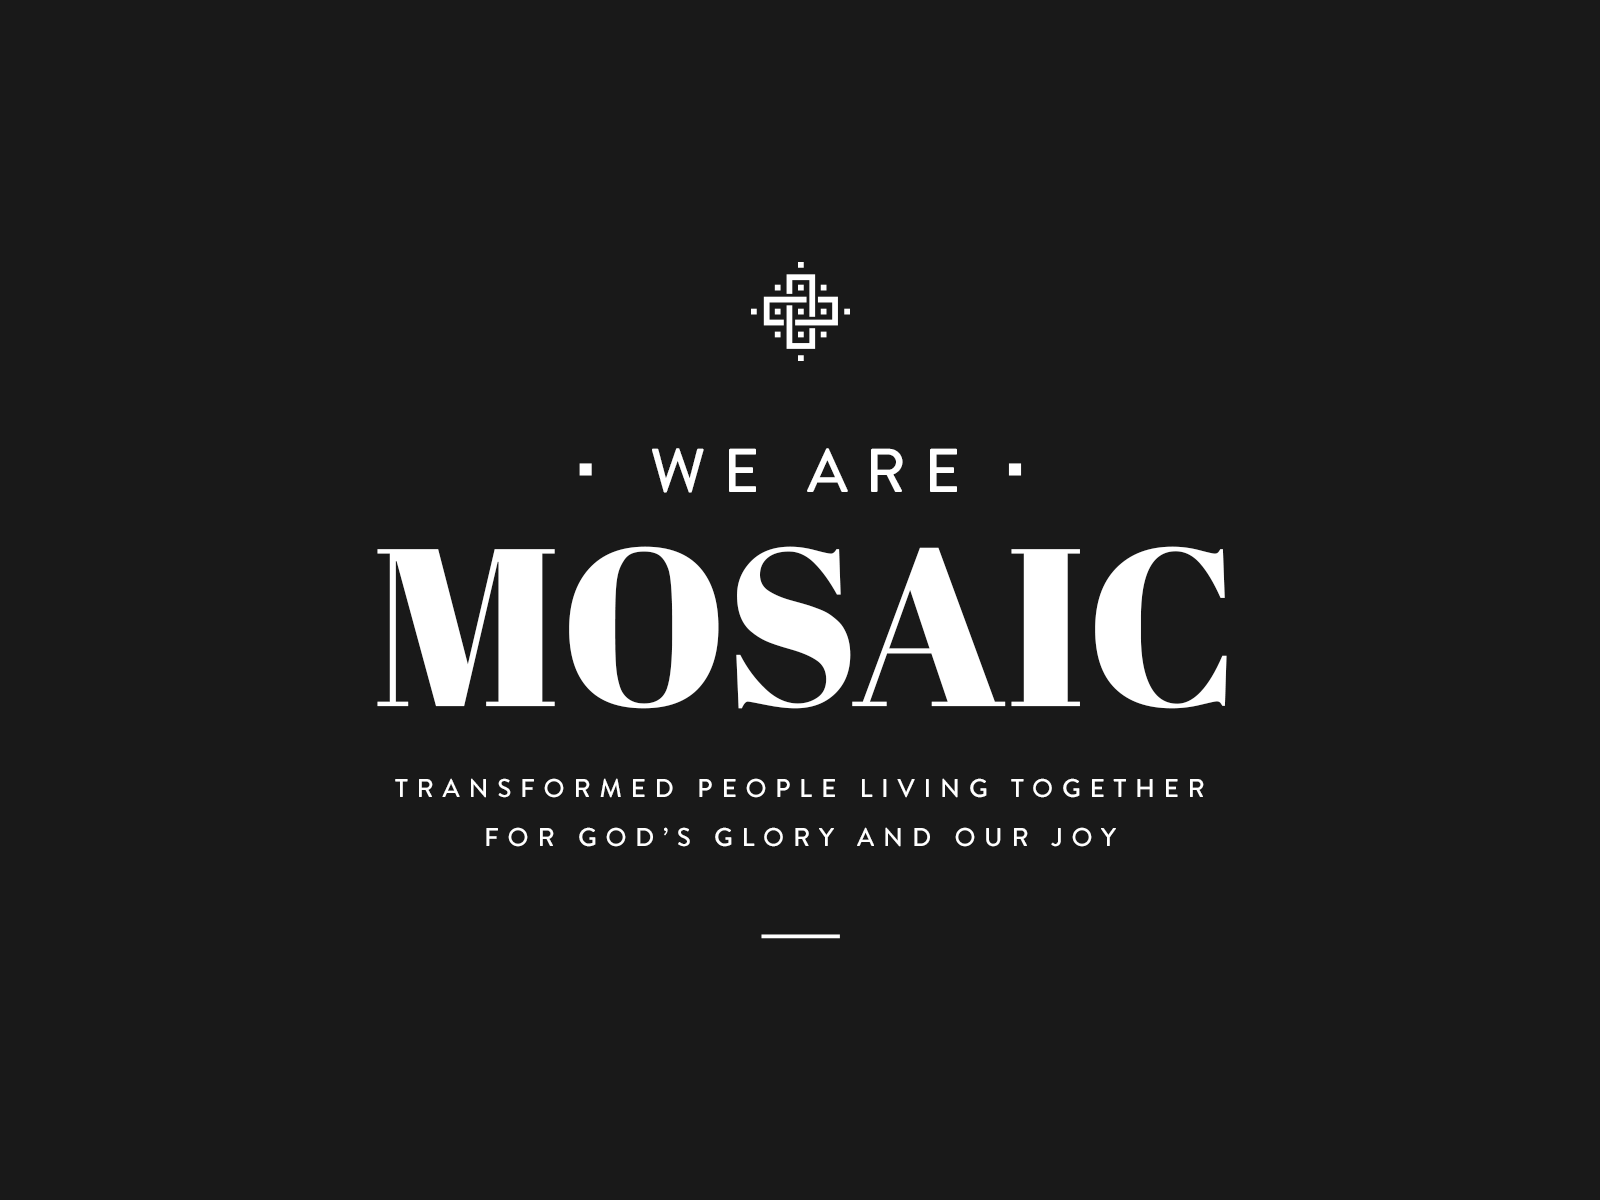 We are mosaic